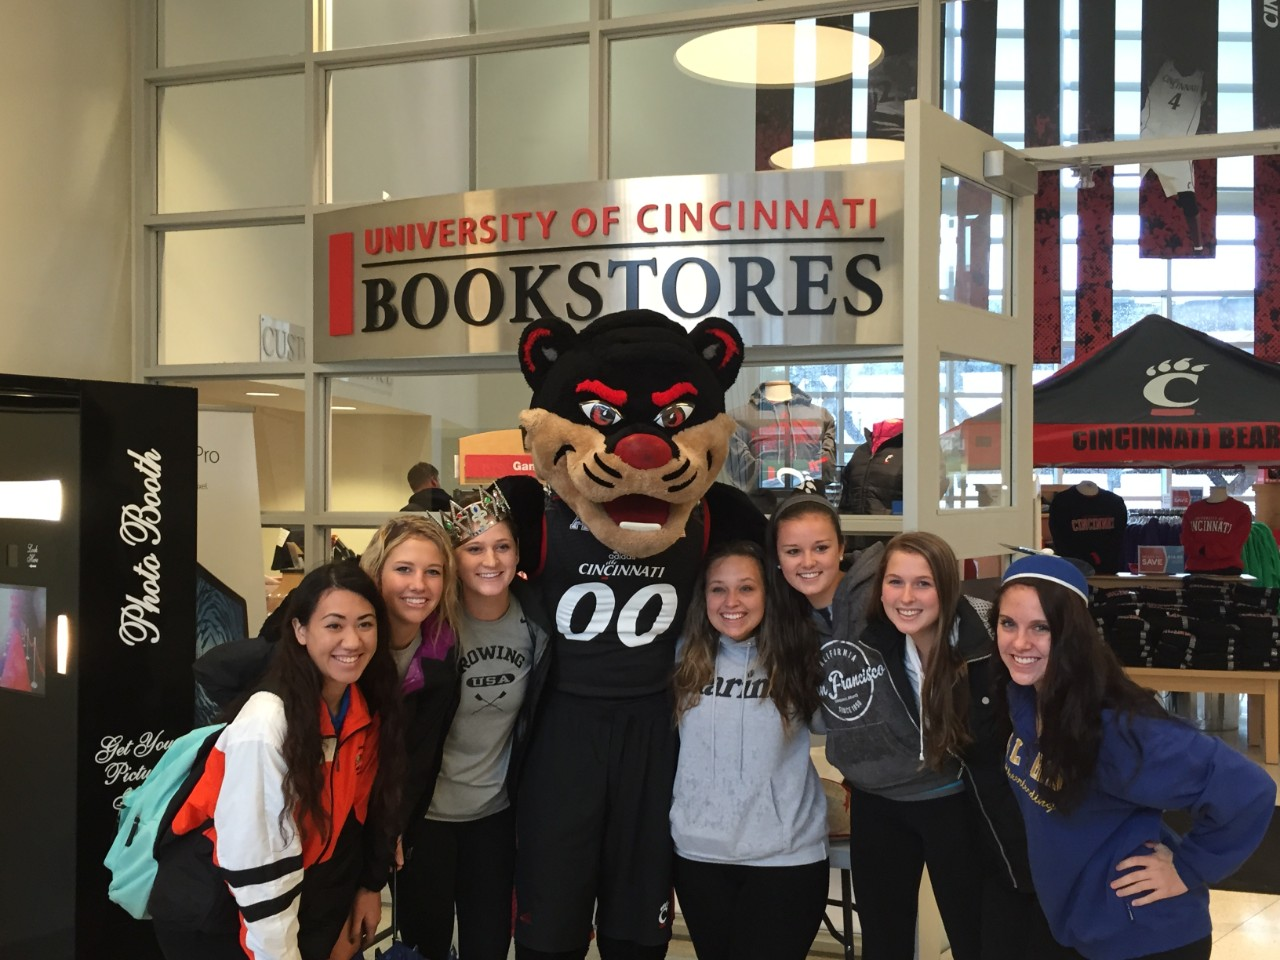 UC students and the Bearcats mascot inside the UC Bookstore